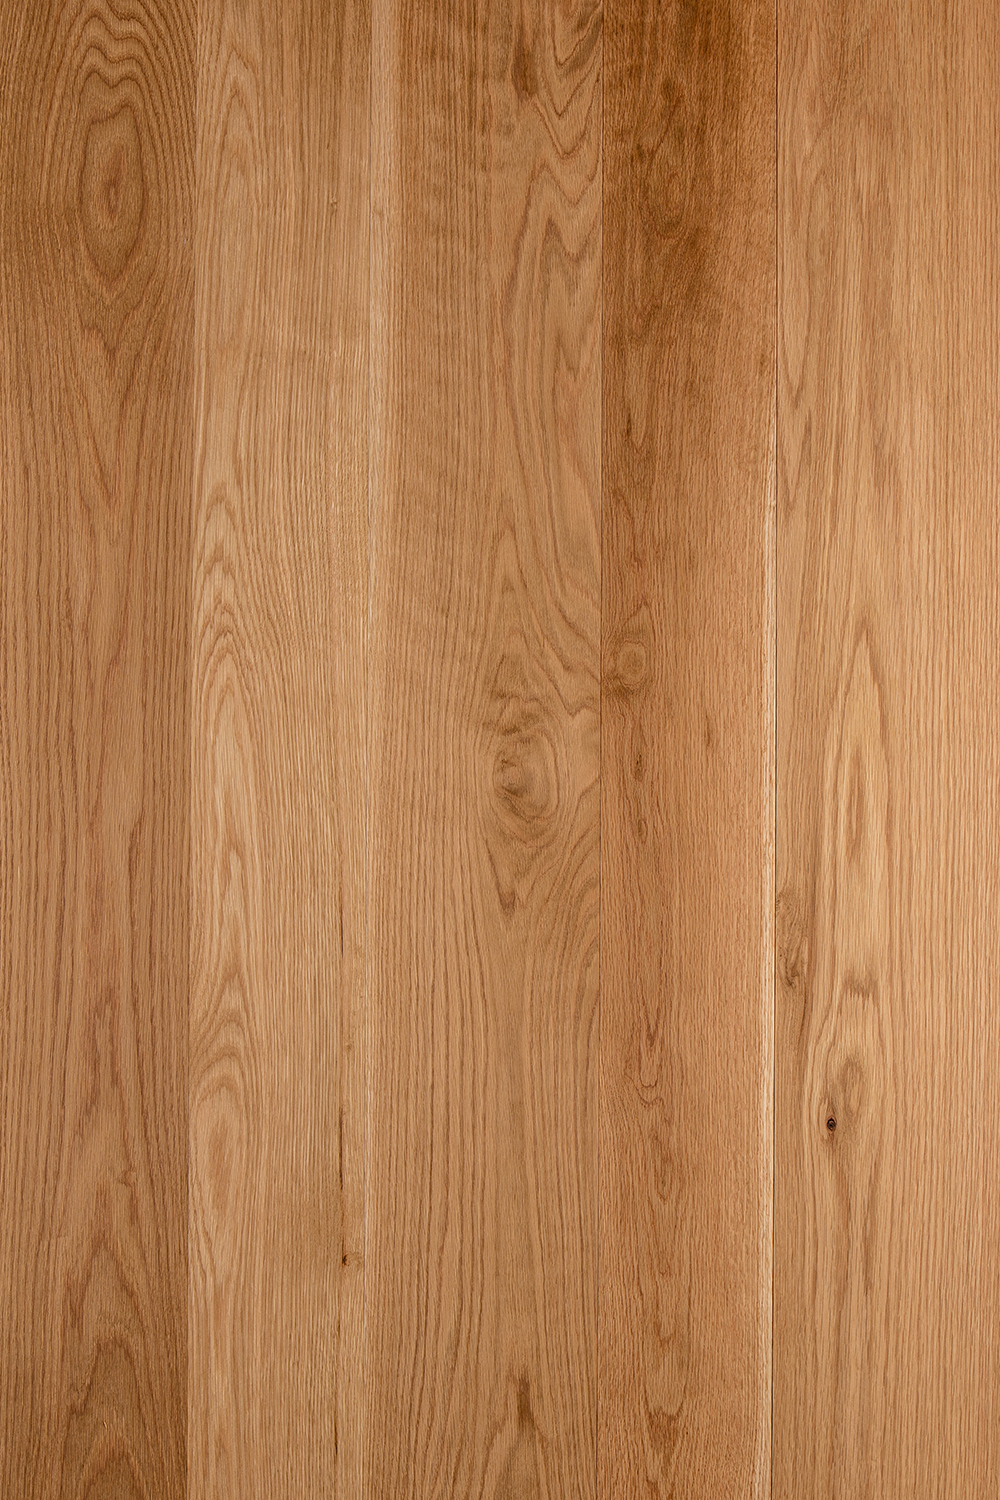 Select Plain Sawn White Oak